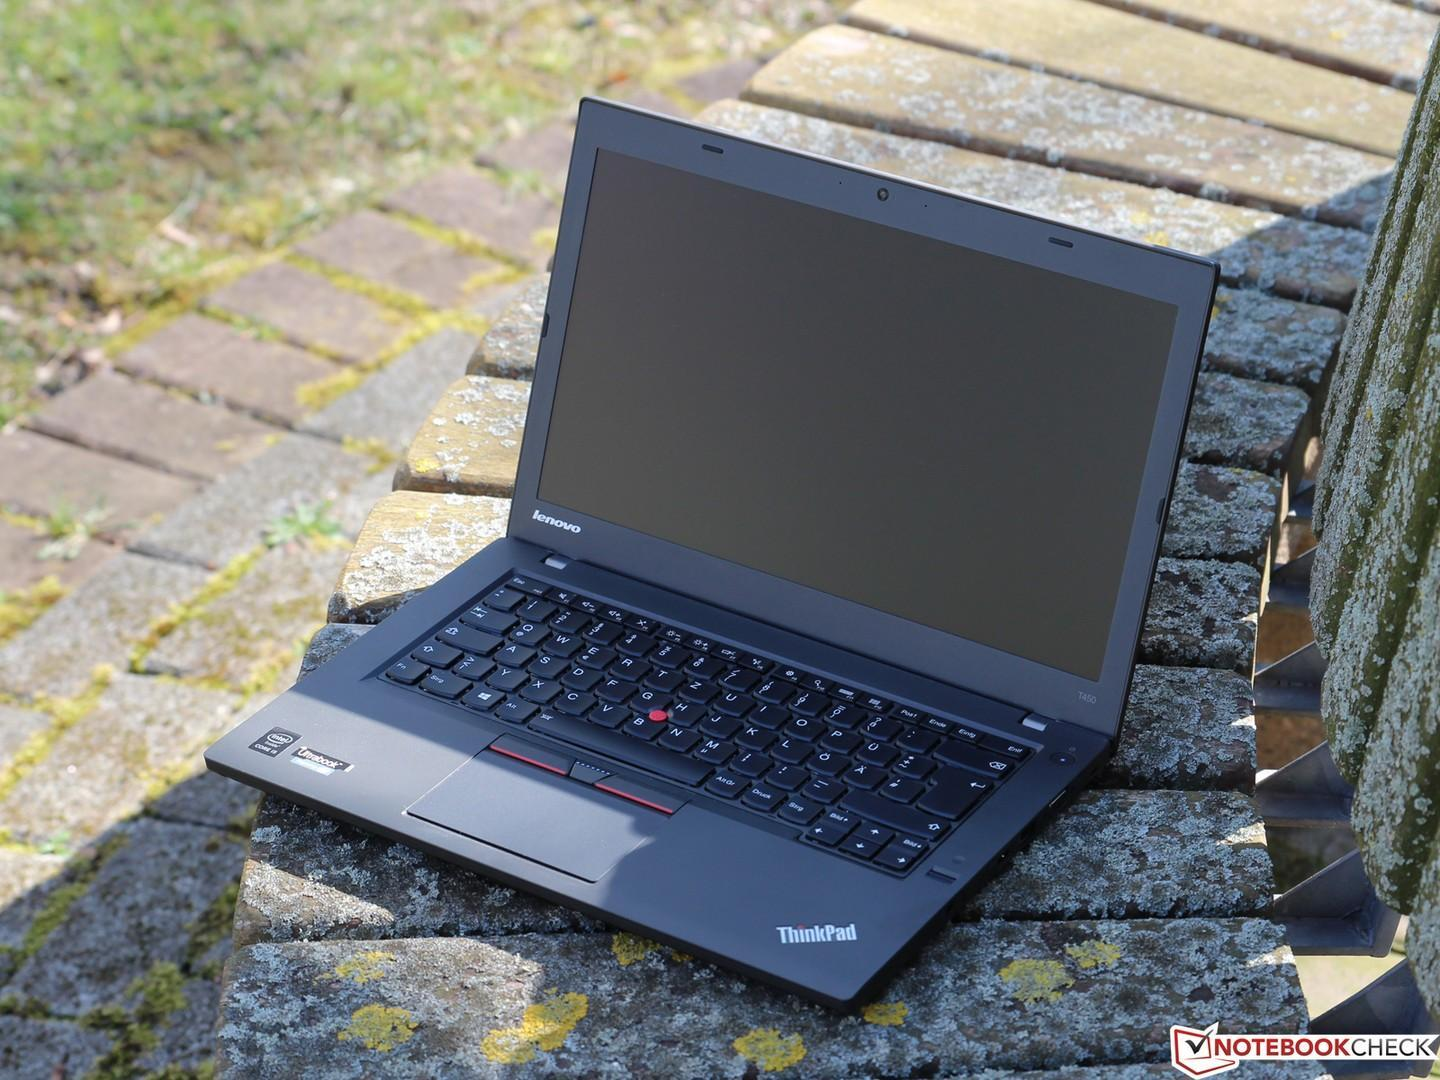 lenovo-thinkpad-t450-1.jpg